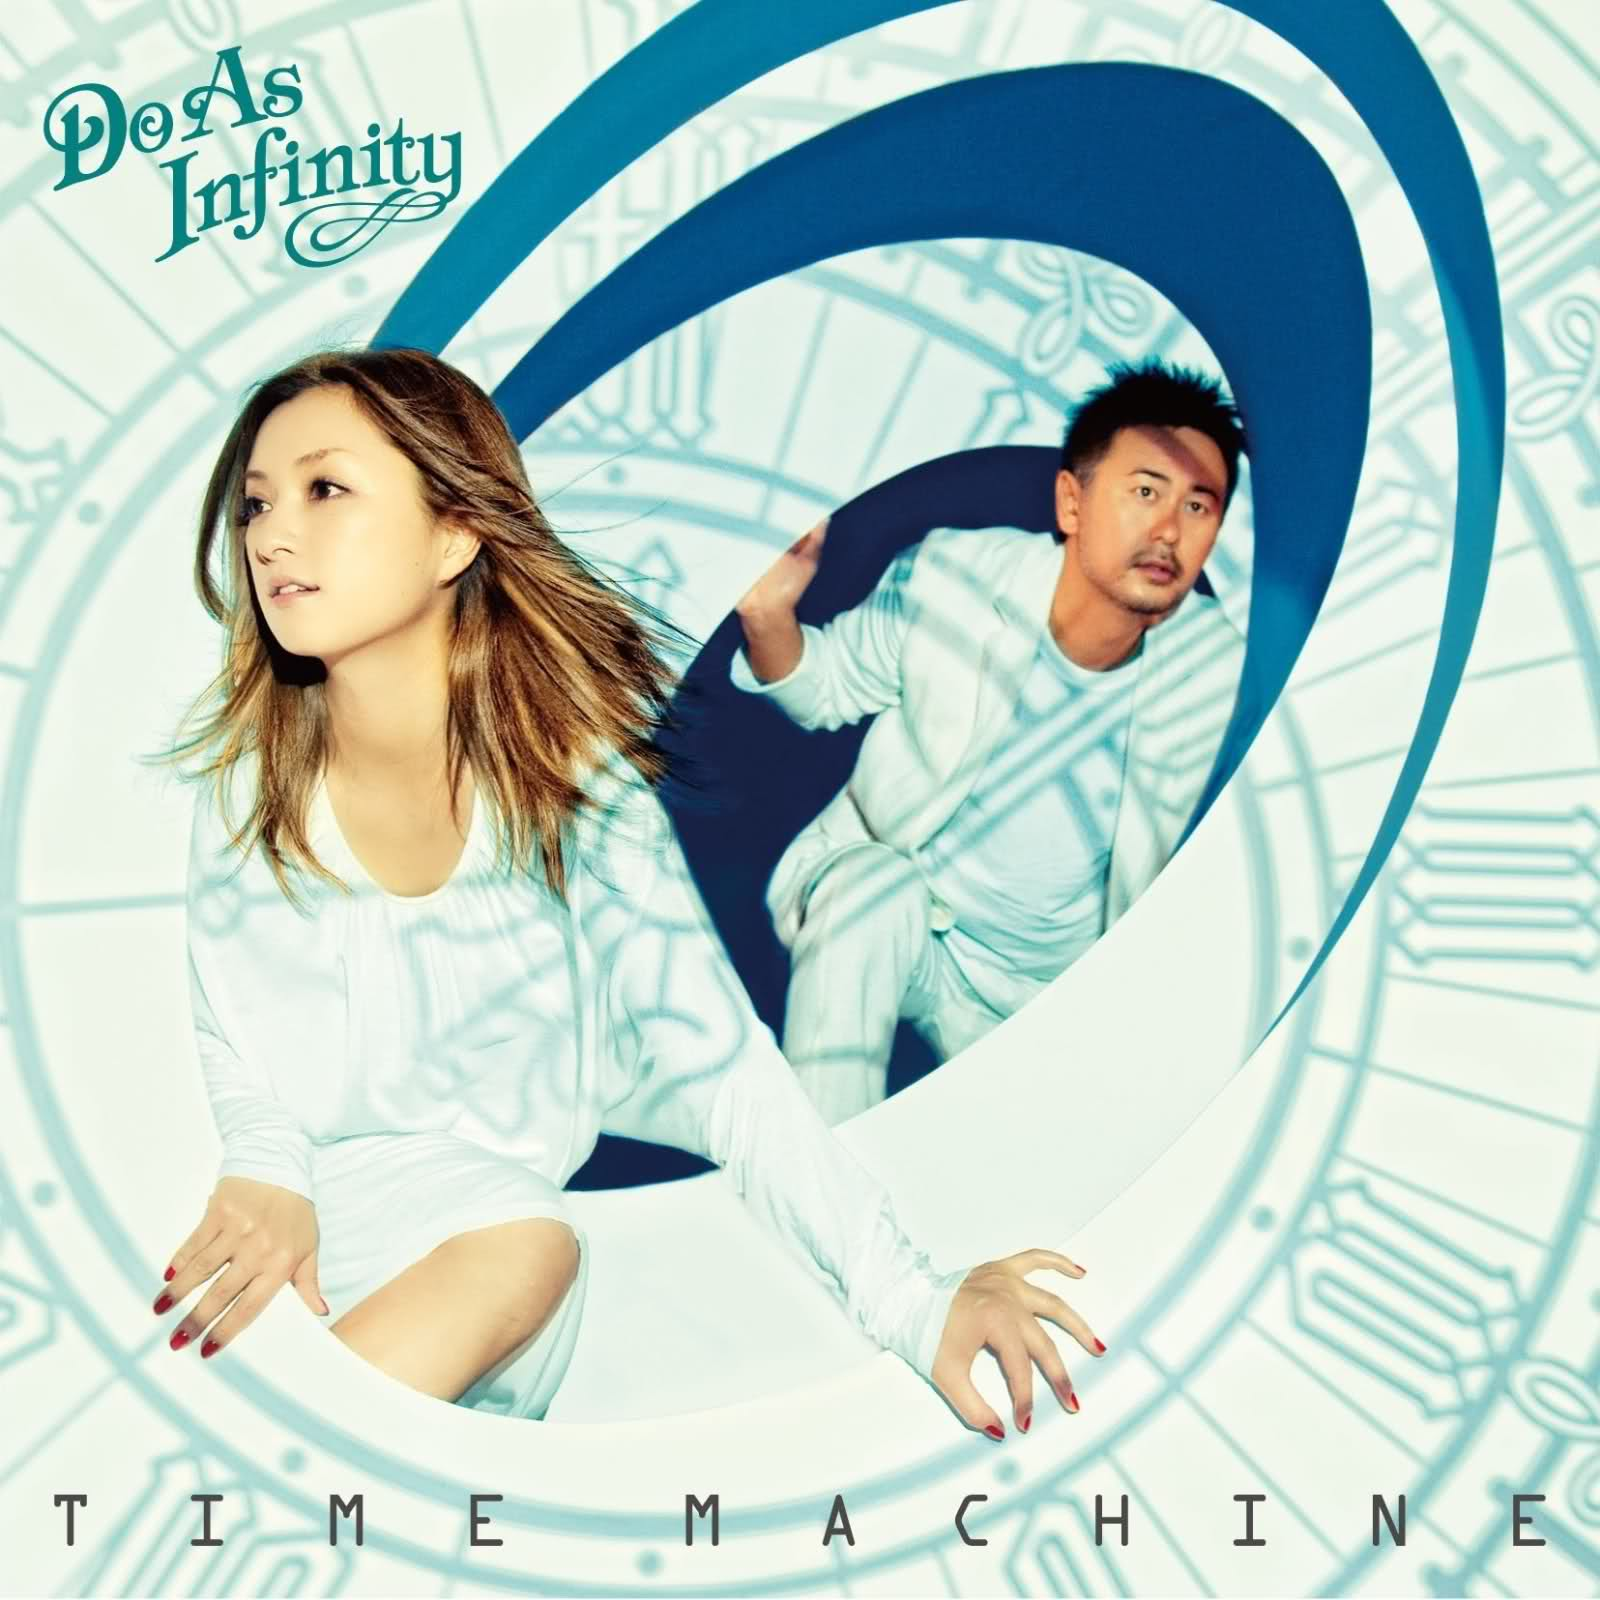 Do as infinity album download